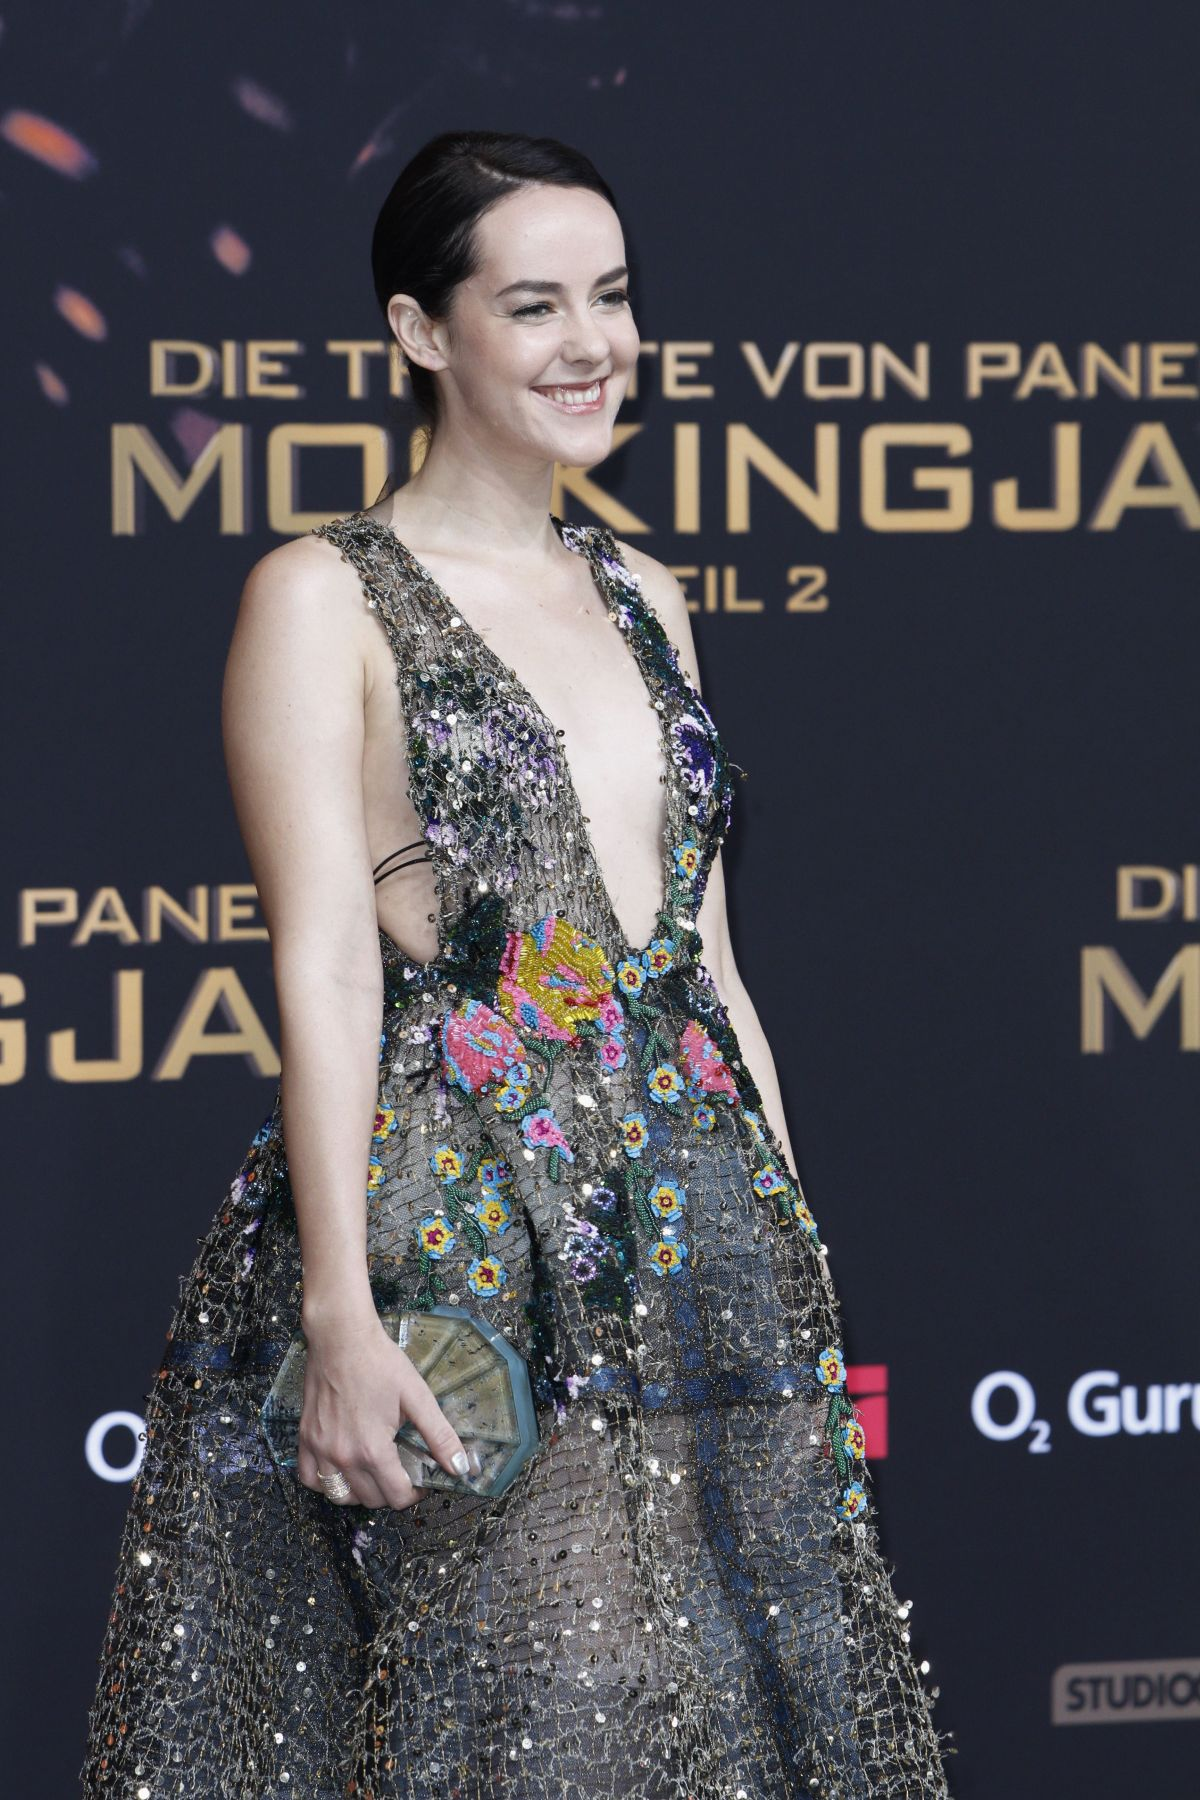 JENA MALONE at The Hunger Dames: Mockingjay, Part 2 Premiere in Berlin 11/04/2015